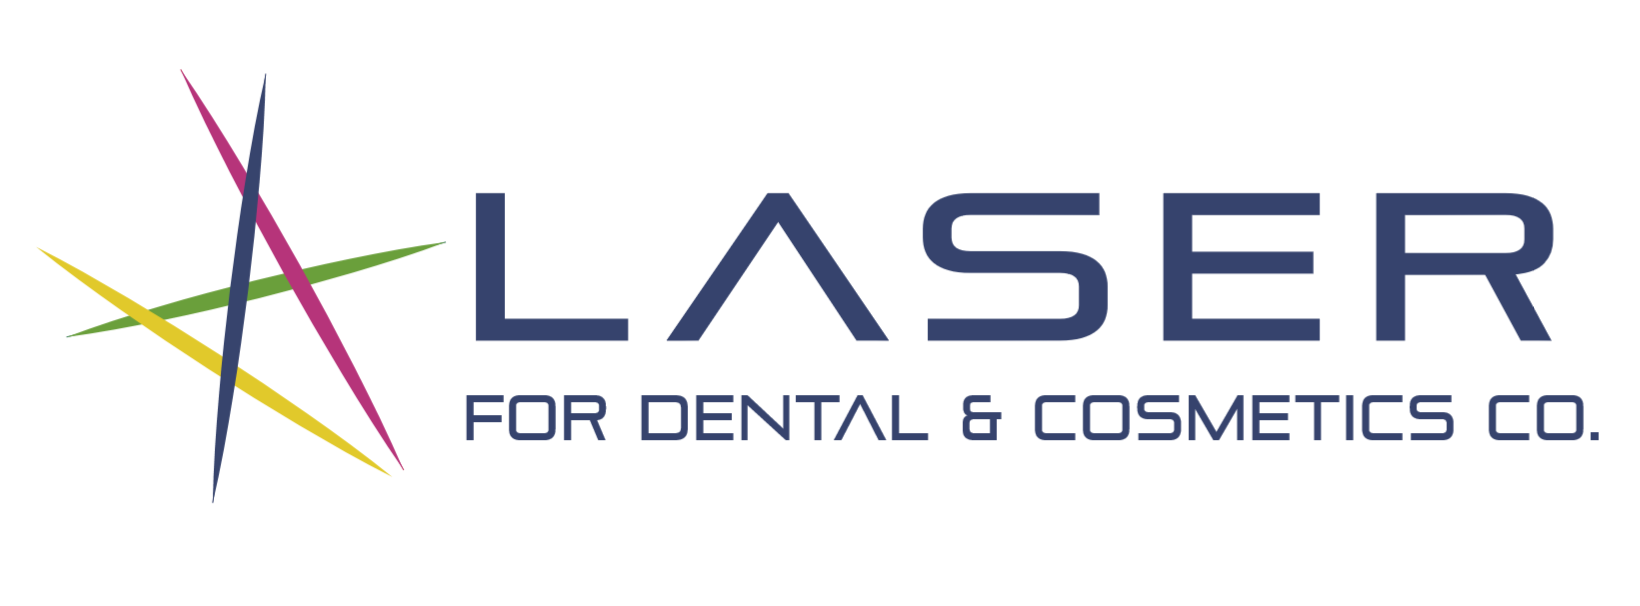 Laser for dental and cosmetic Co.